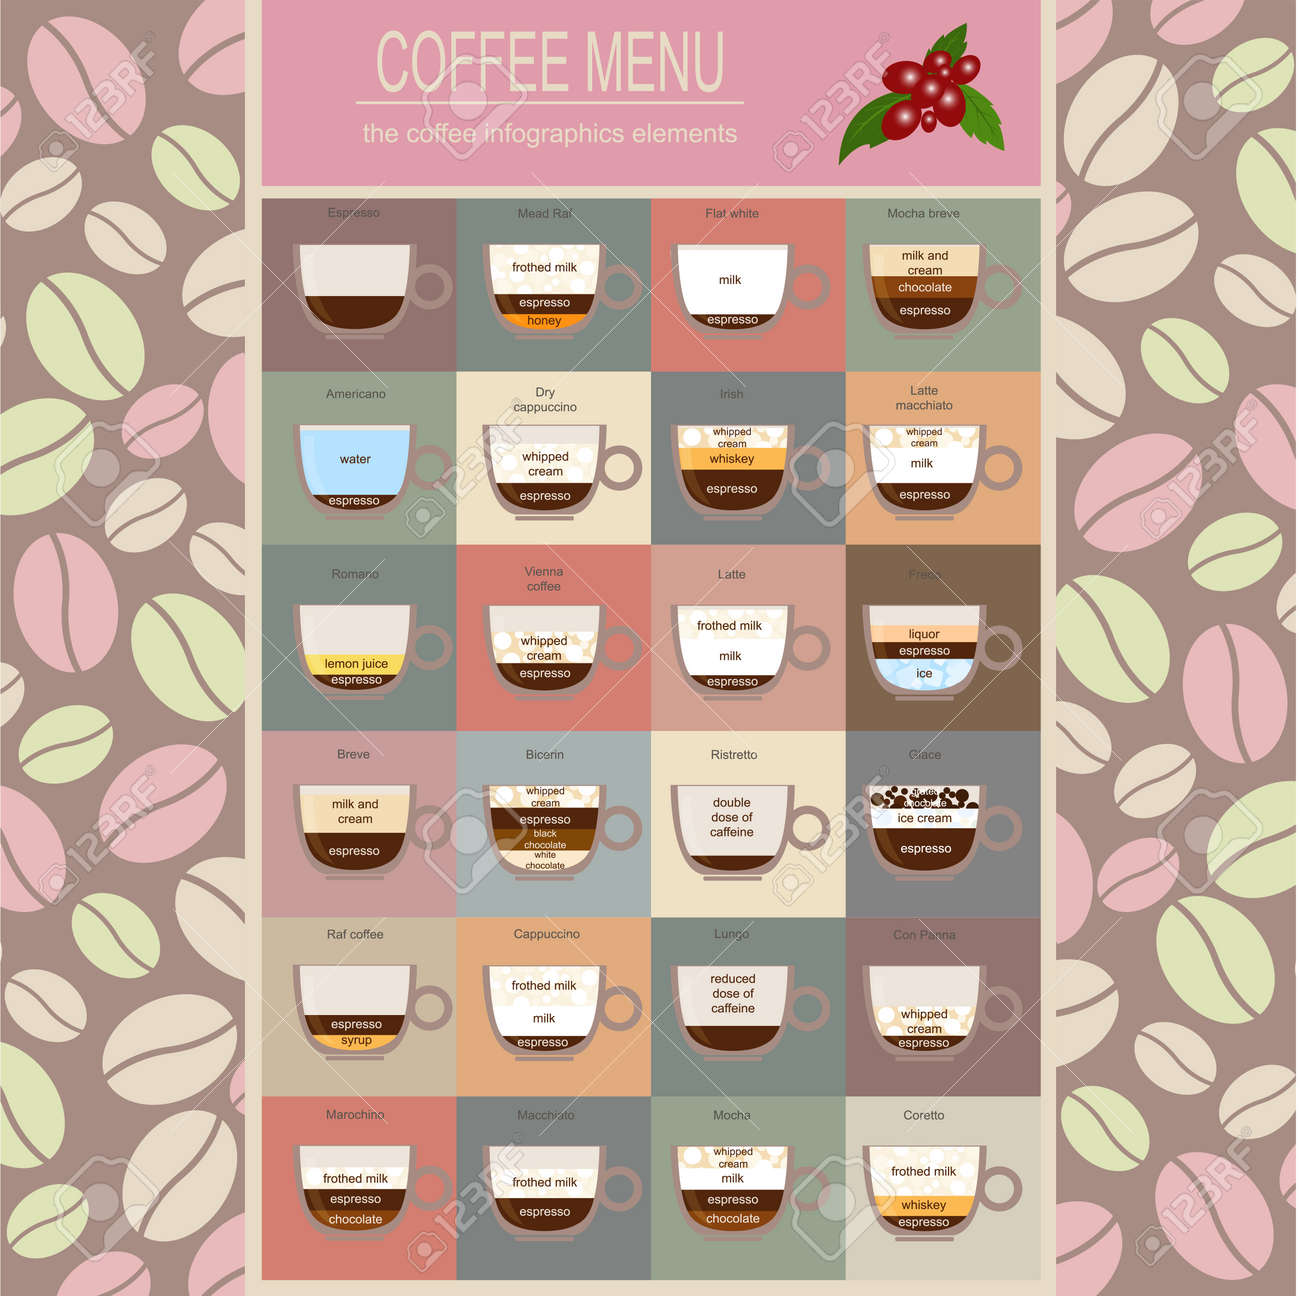 the coffee menu infographics set elements for creating your